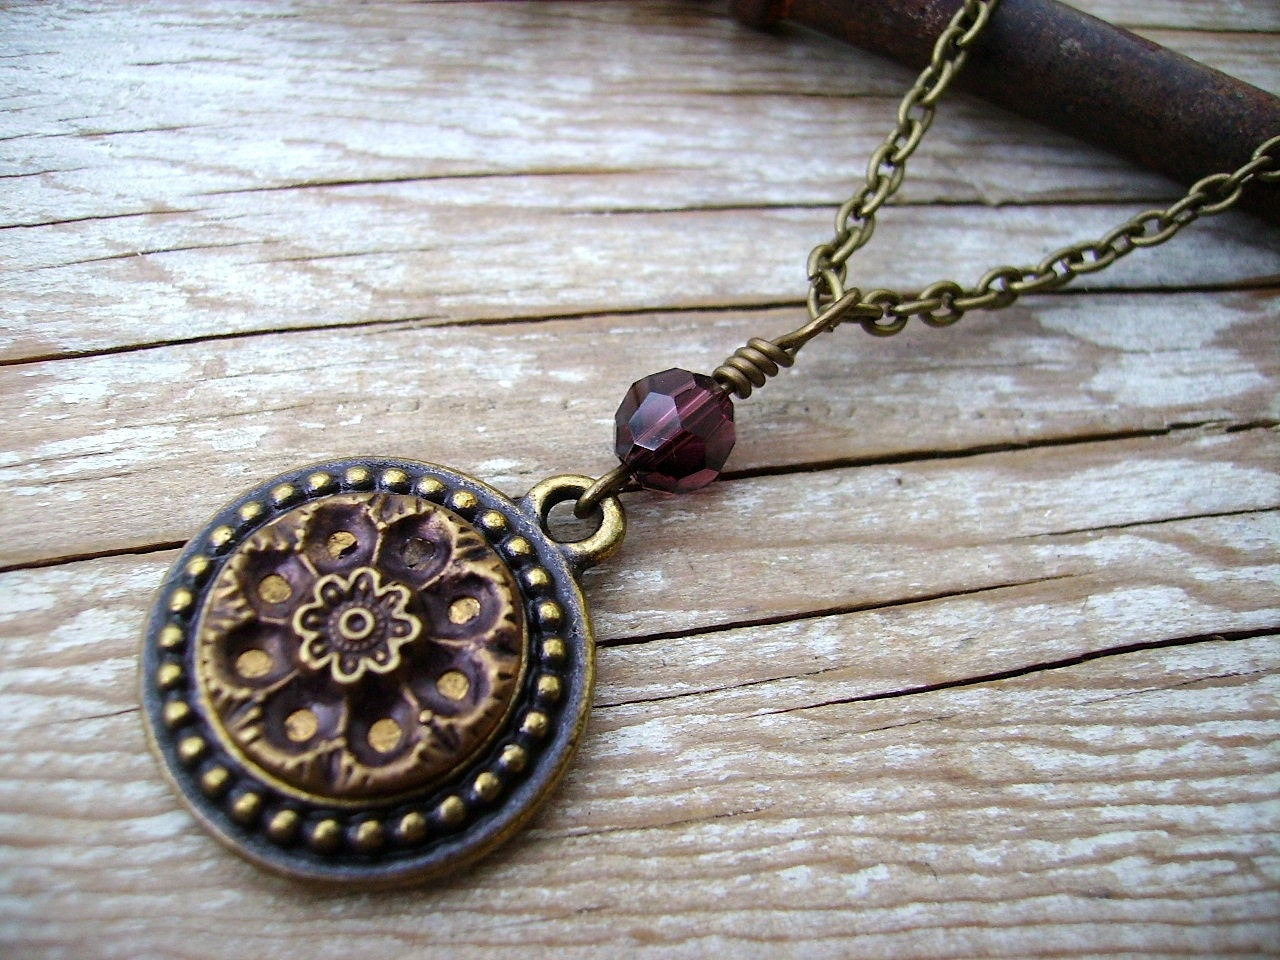 Antique Button Earring and Necklace Set Burgundy Mirror Blossom Gold Button Teardrop Earring Handmade by Compass Rose Design